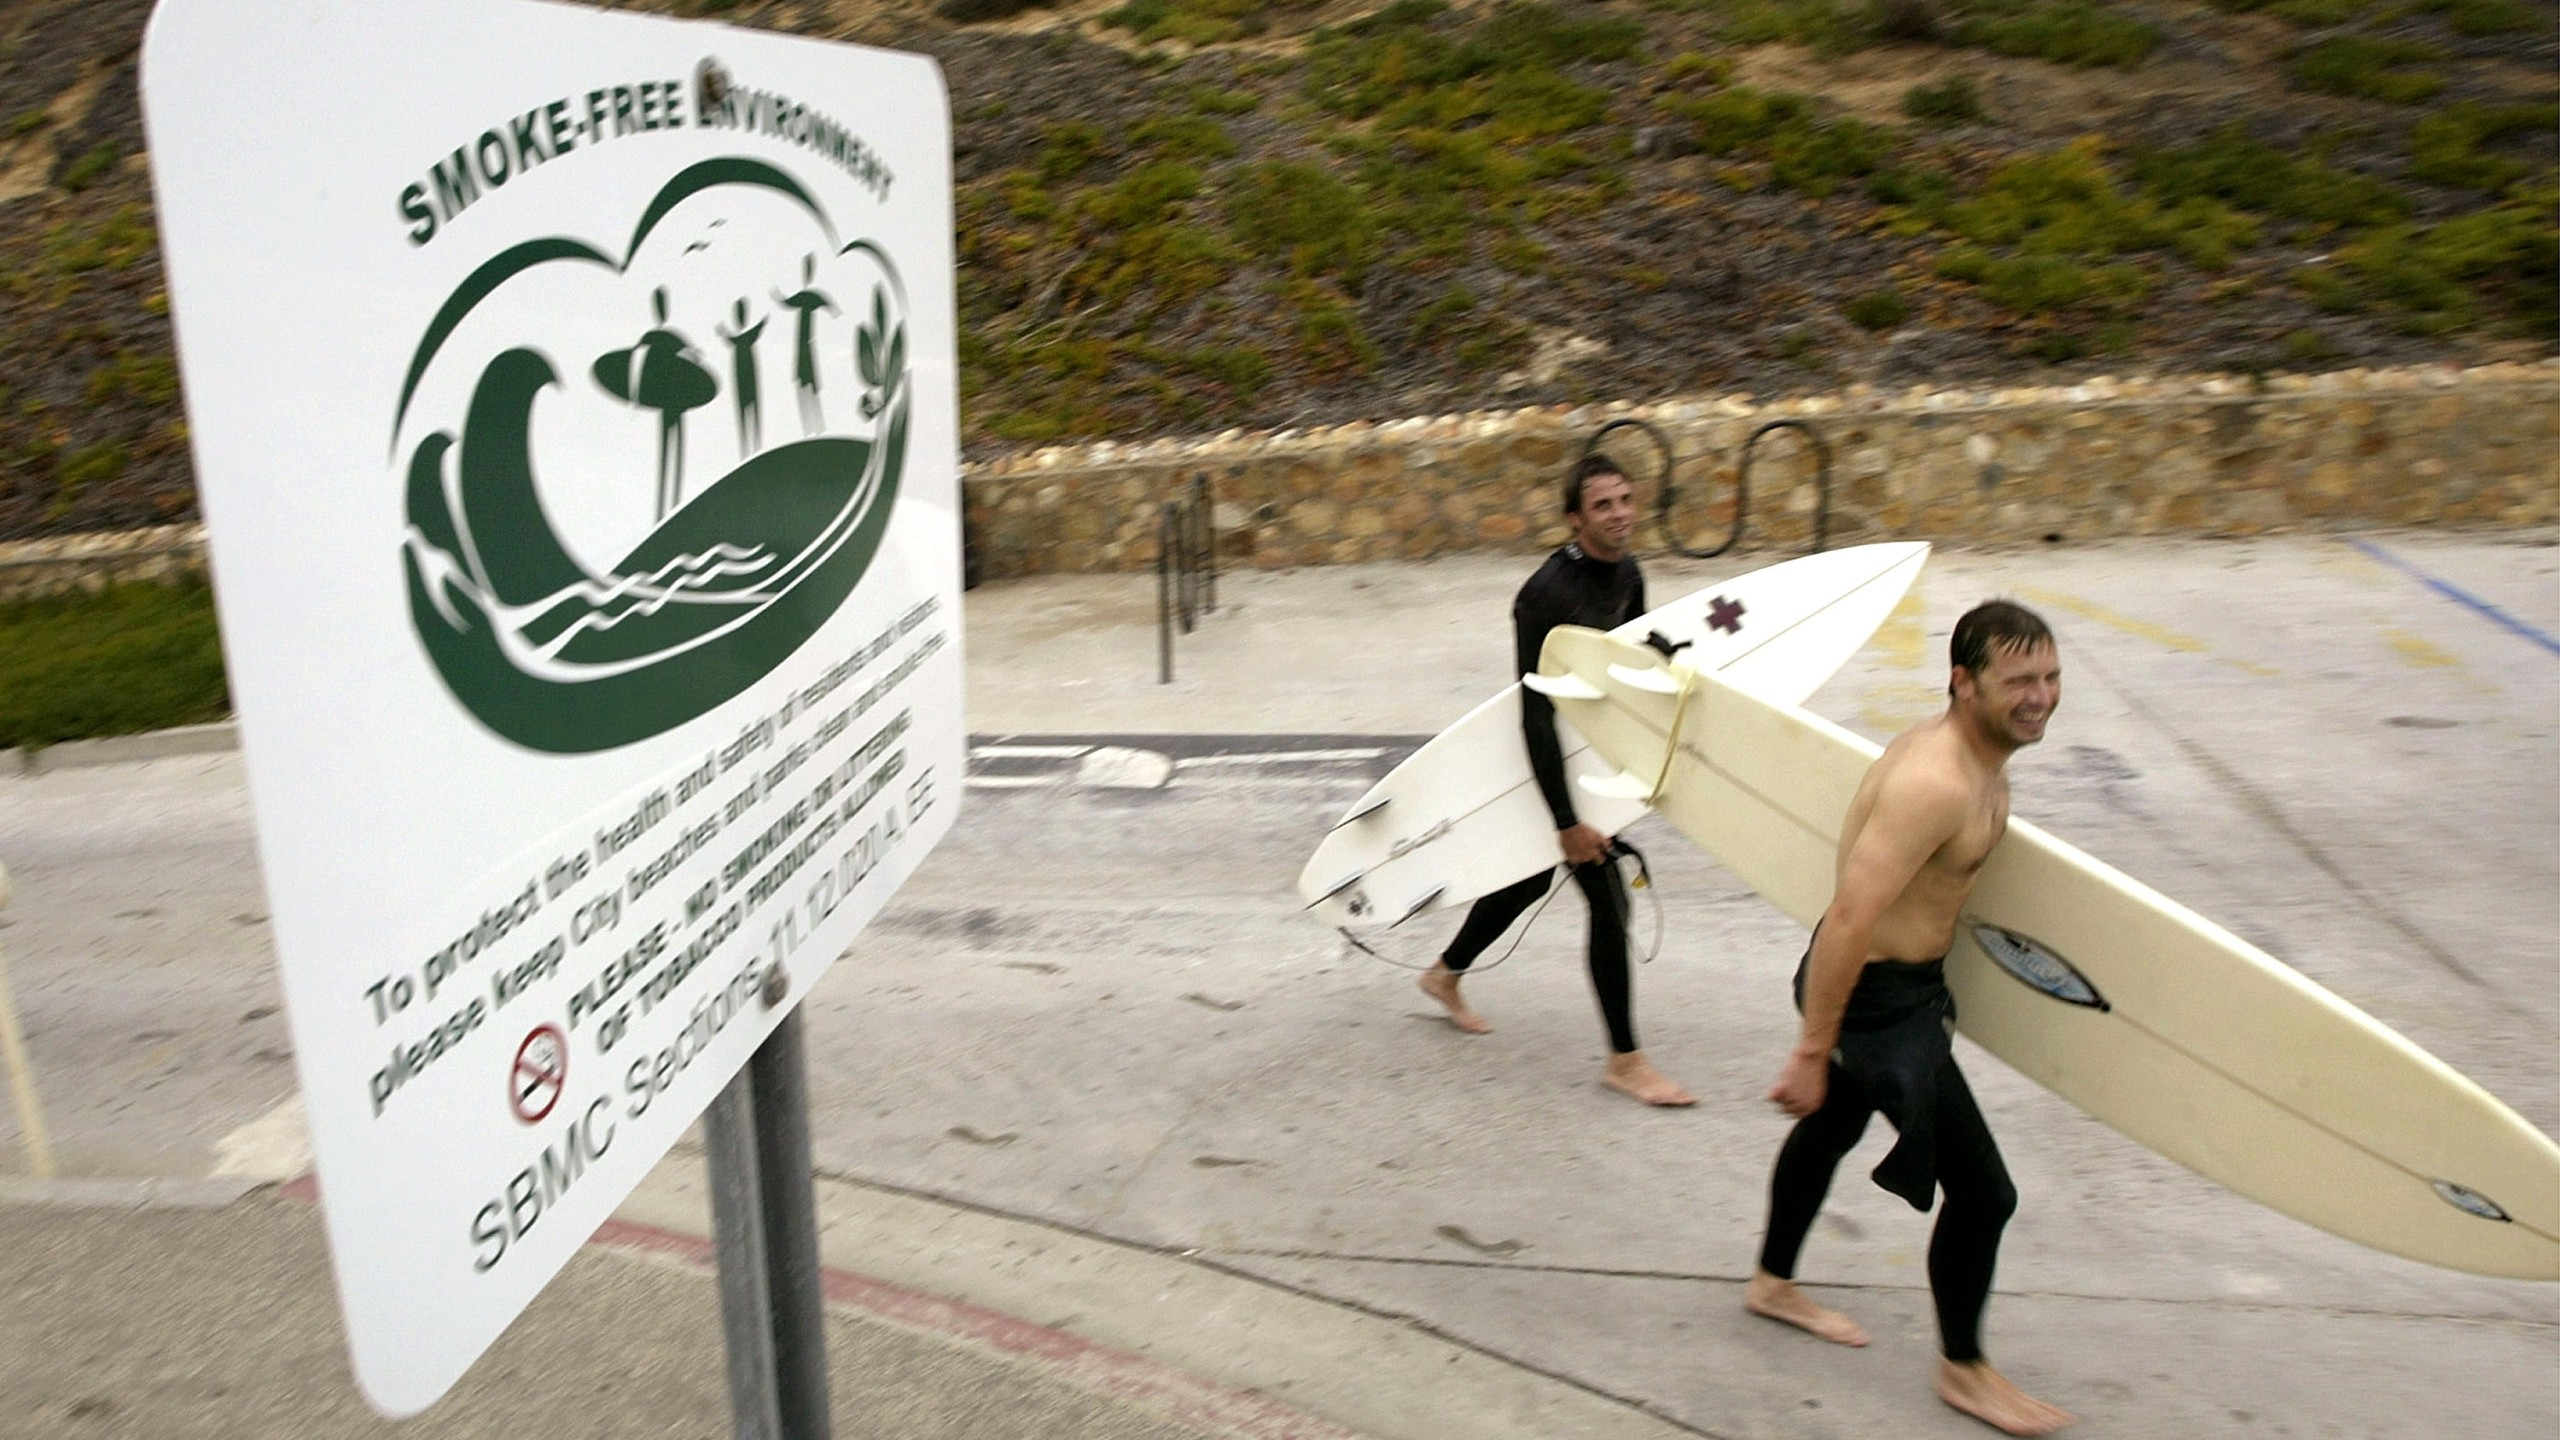 A surfer walks past a no smoking sign on March 22, 2004 in Solana Beach. (Credit: David McNew/Getty Images)